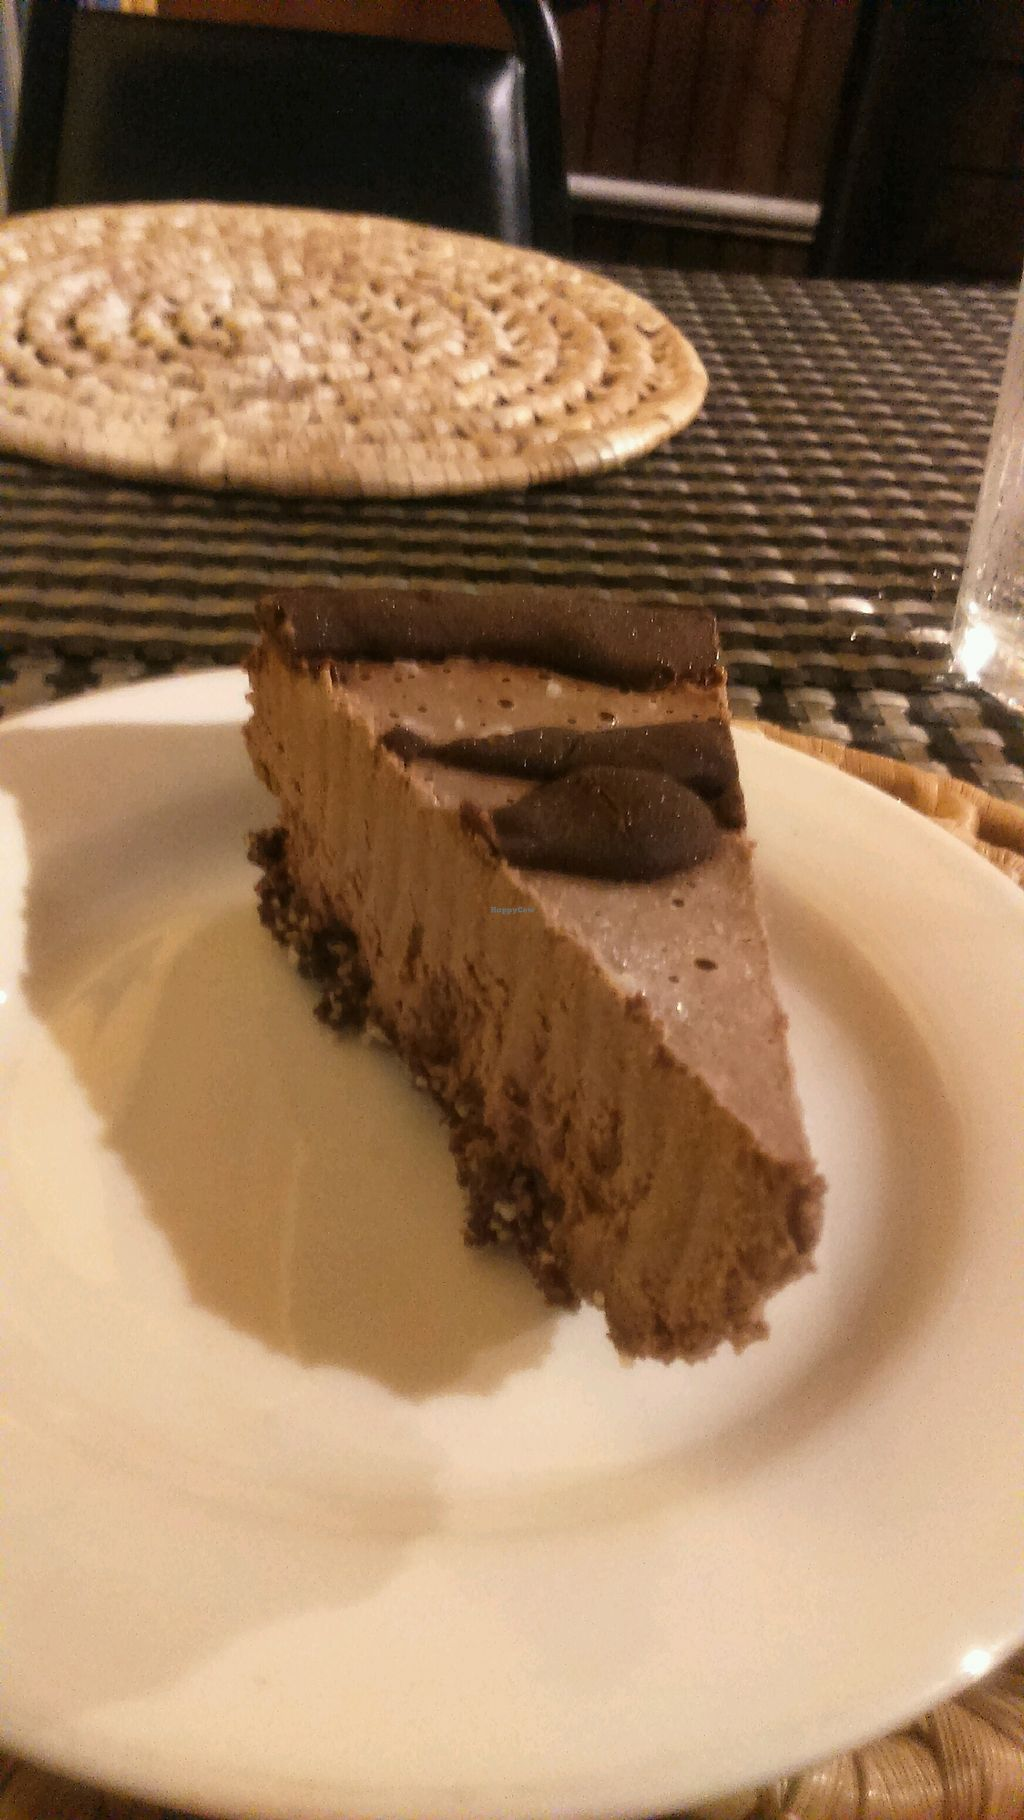 """Photo of The Good Life  by <a href=""""/members/profile/PabloDeCruz"""">PabloDeCruz</a> <br/>AMAZING cheesecake!!! <br/> October 9, 2017  - <a href='/contact/abuse/image/18860/313397'>Report</a>"""